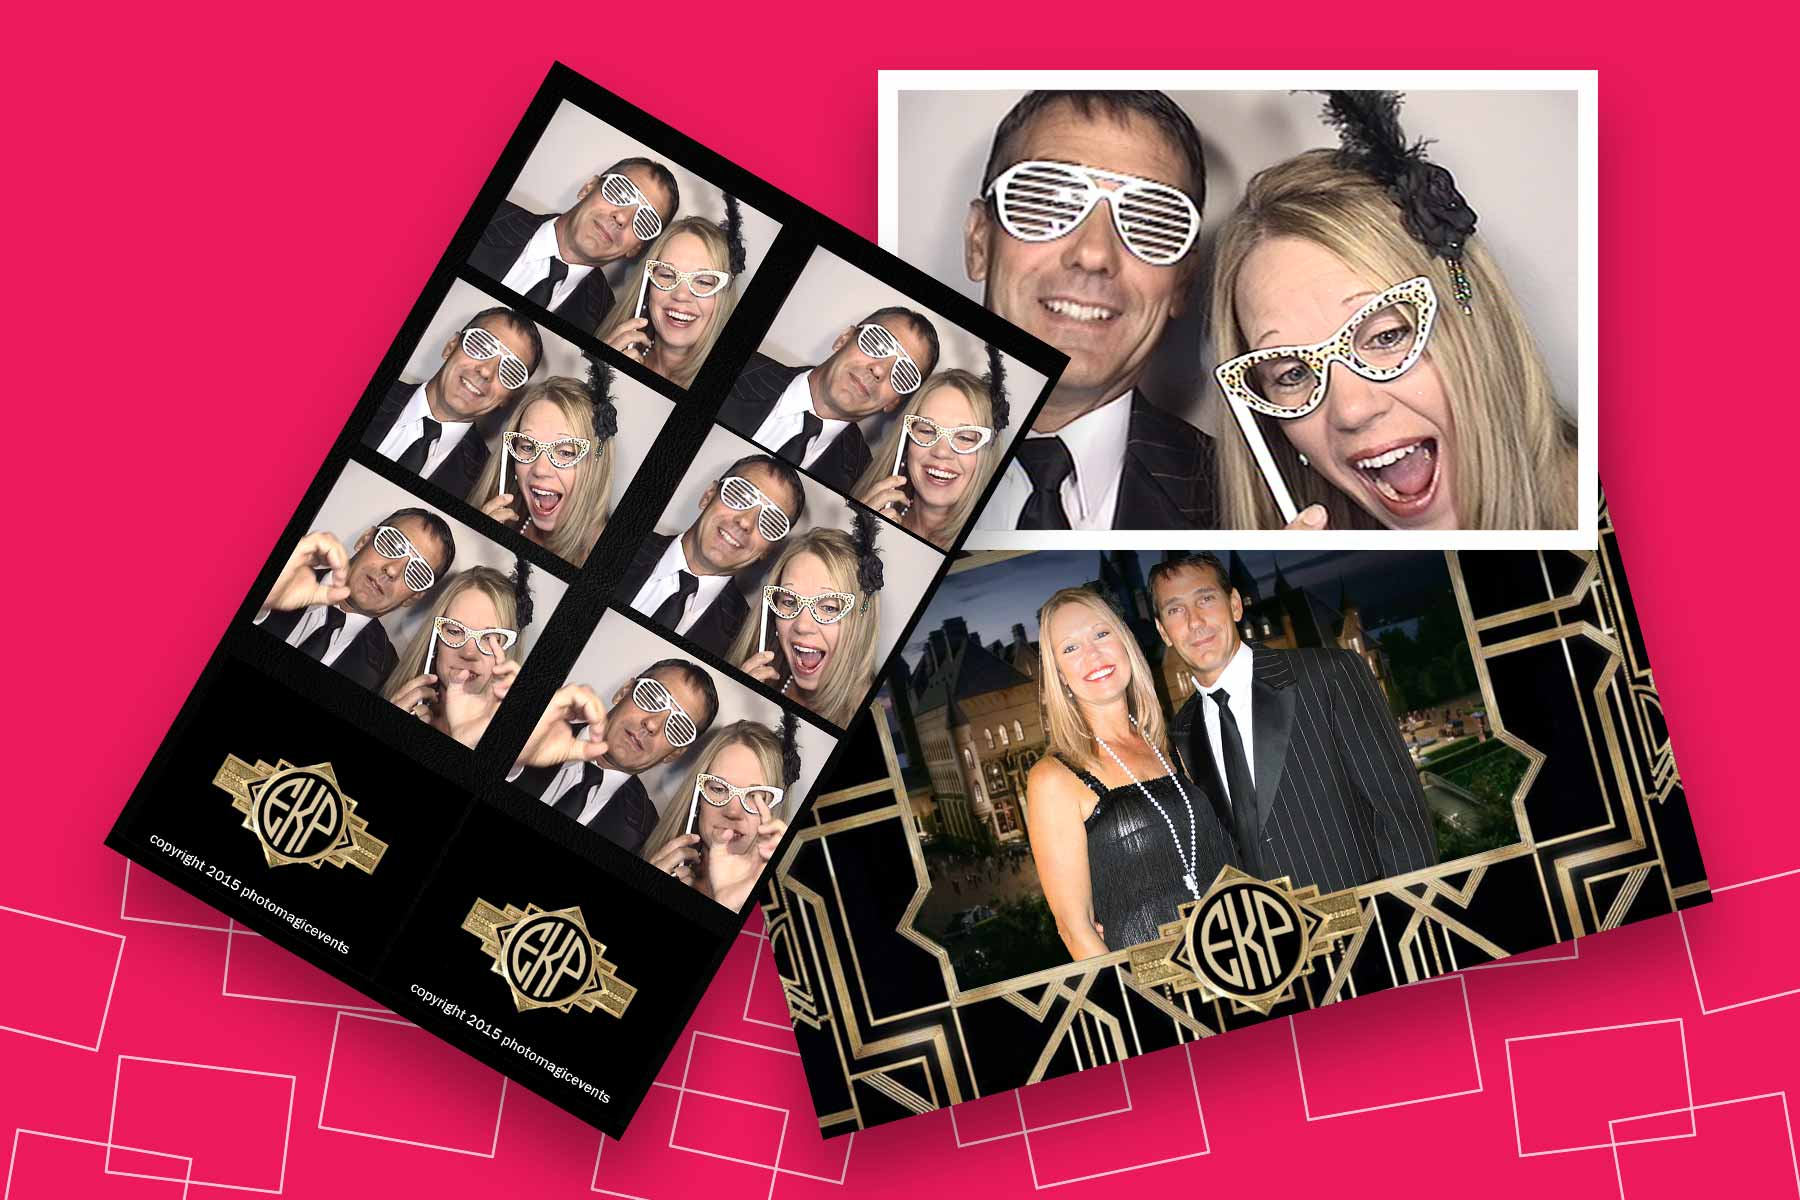 Custom Photo Strip Frame for Arcade Photo Booth | Photo Magic Events